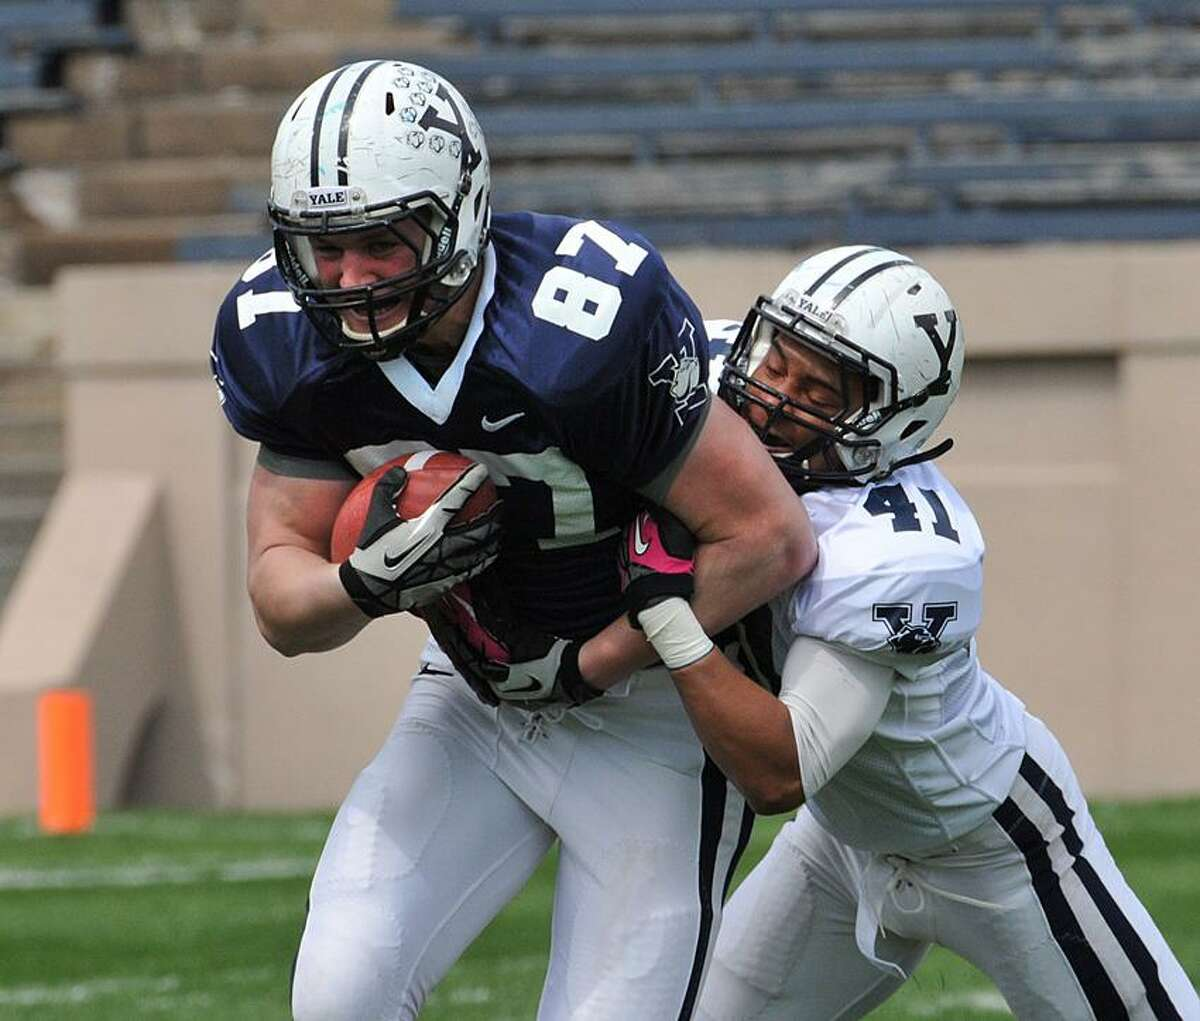 New Haven-- Yale TE Michael Leunen drives for extra yards as Roger Kilgore III defends during the annual spring football scrimmage .Photo-Peter Casolino/Register pcasolino@newhavenregister.com